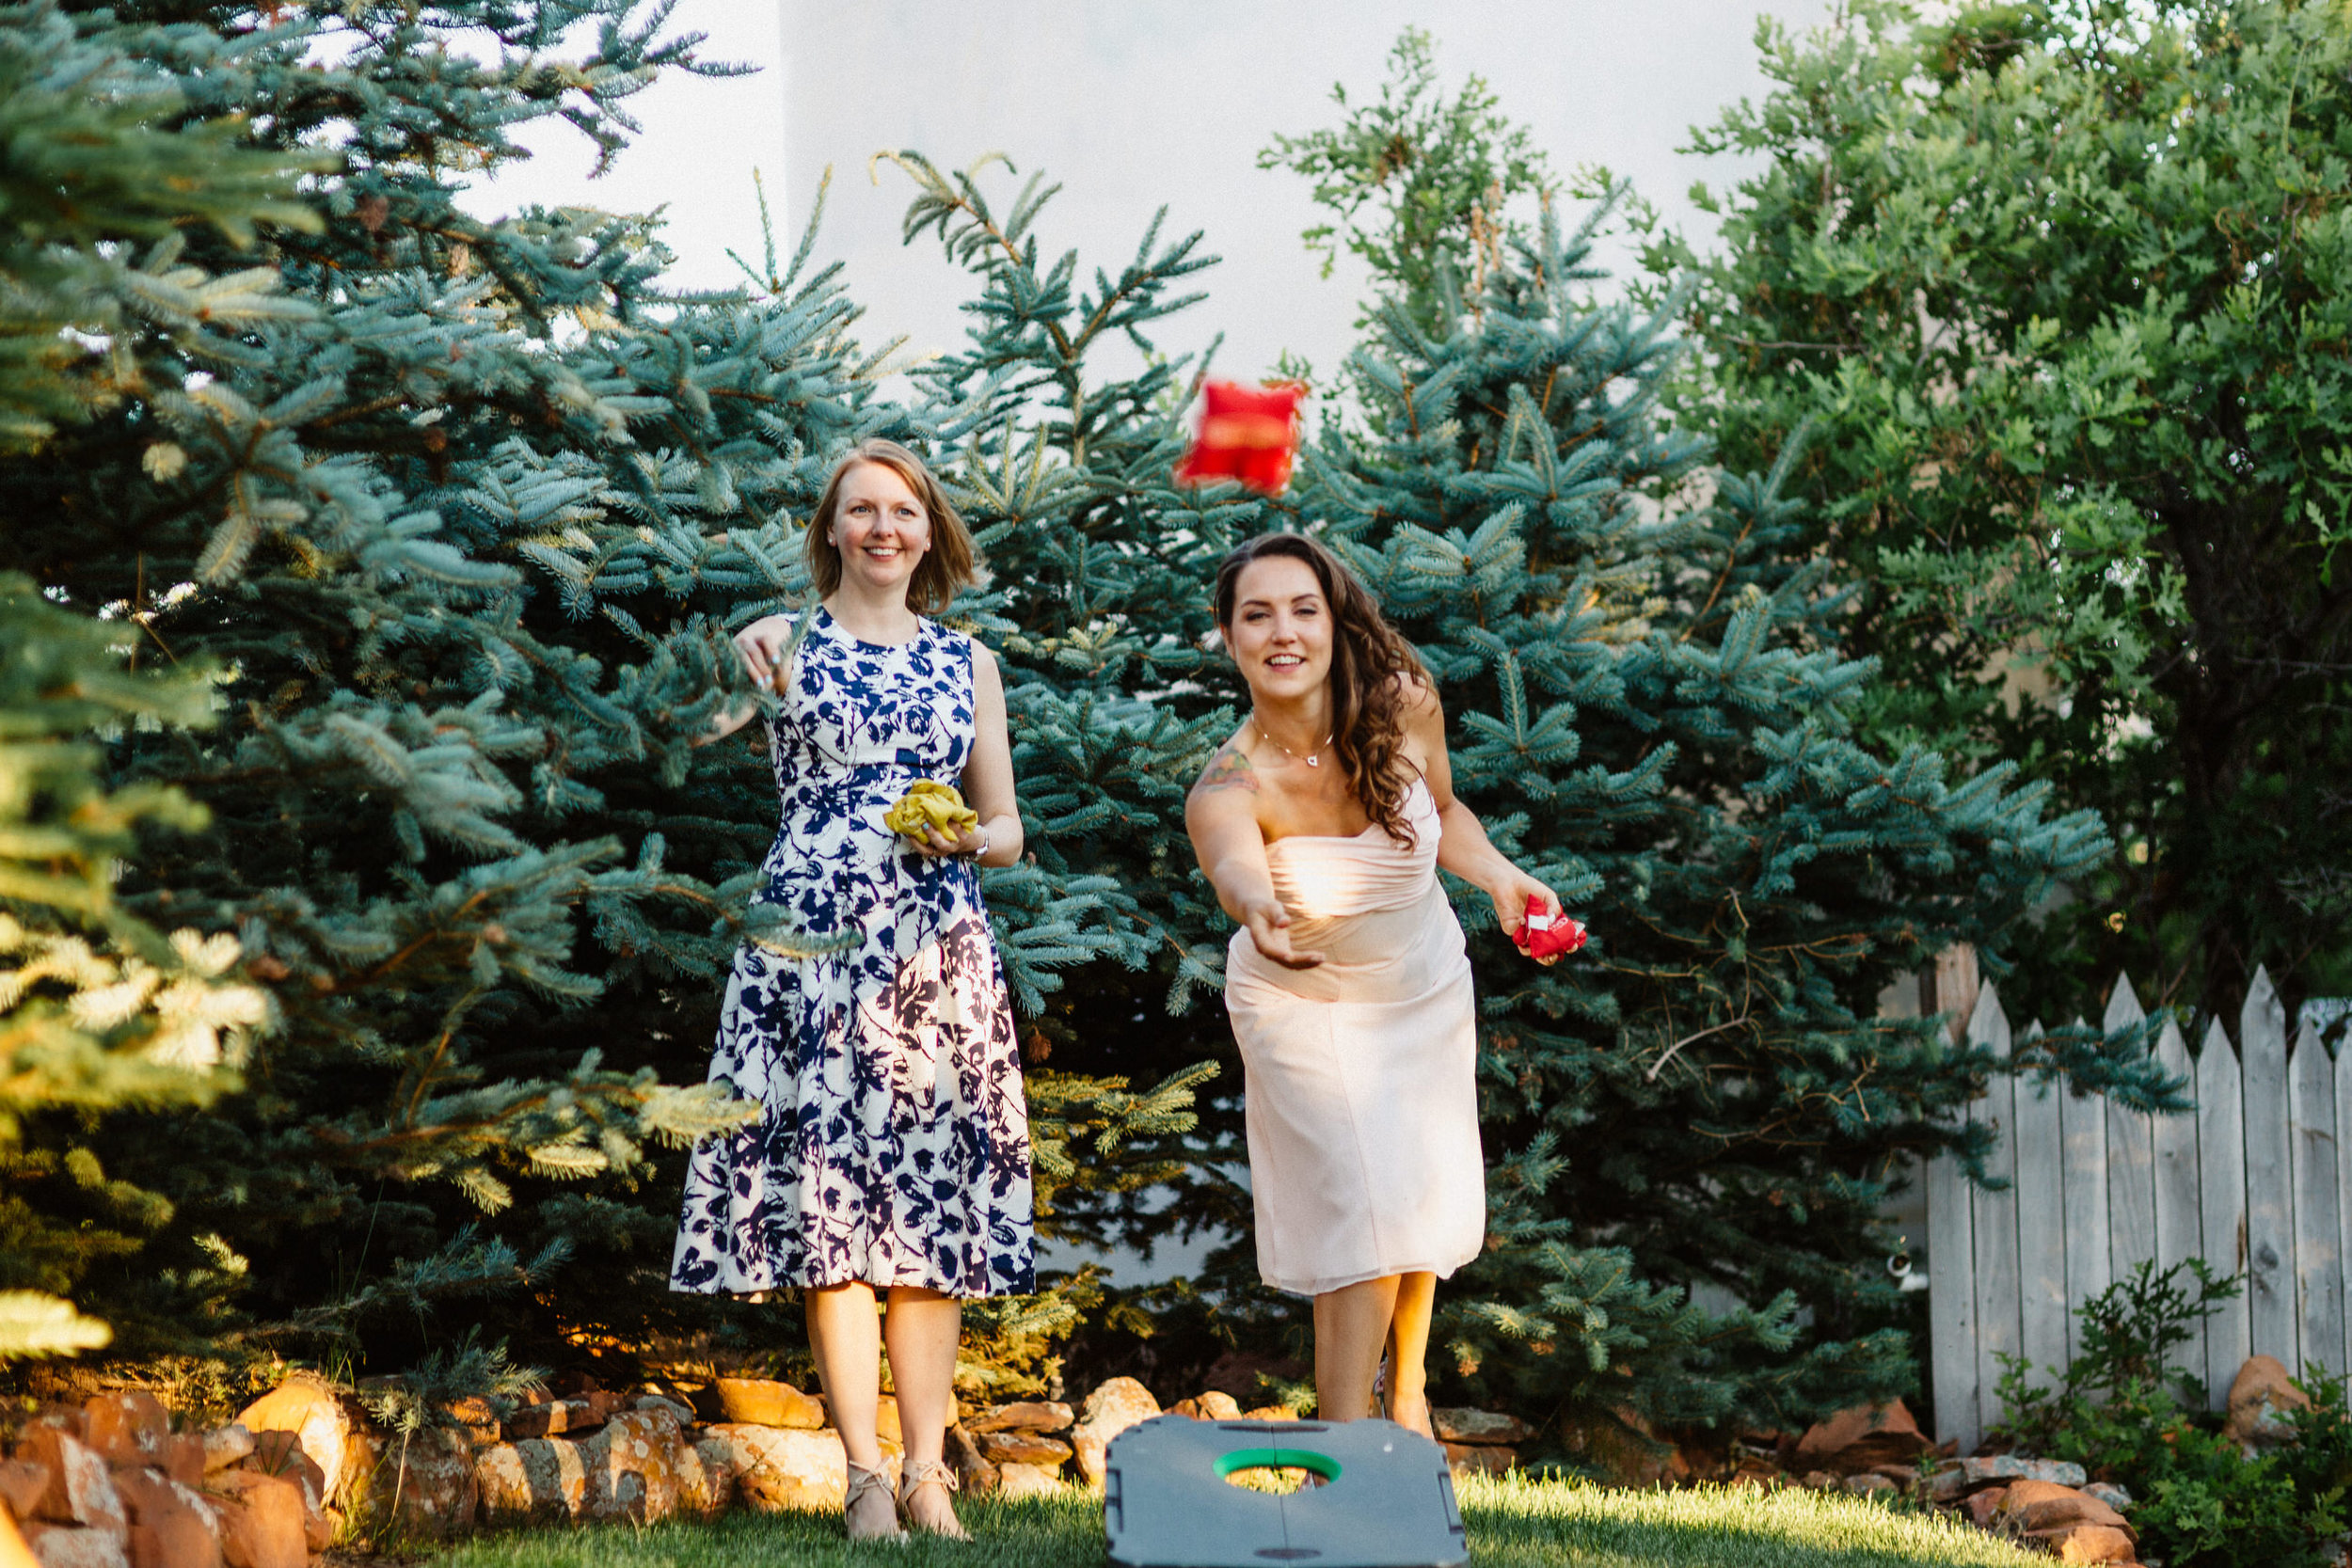 backyard wedding Heber City Utah destination wedding portland oregon photography0109.JPG